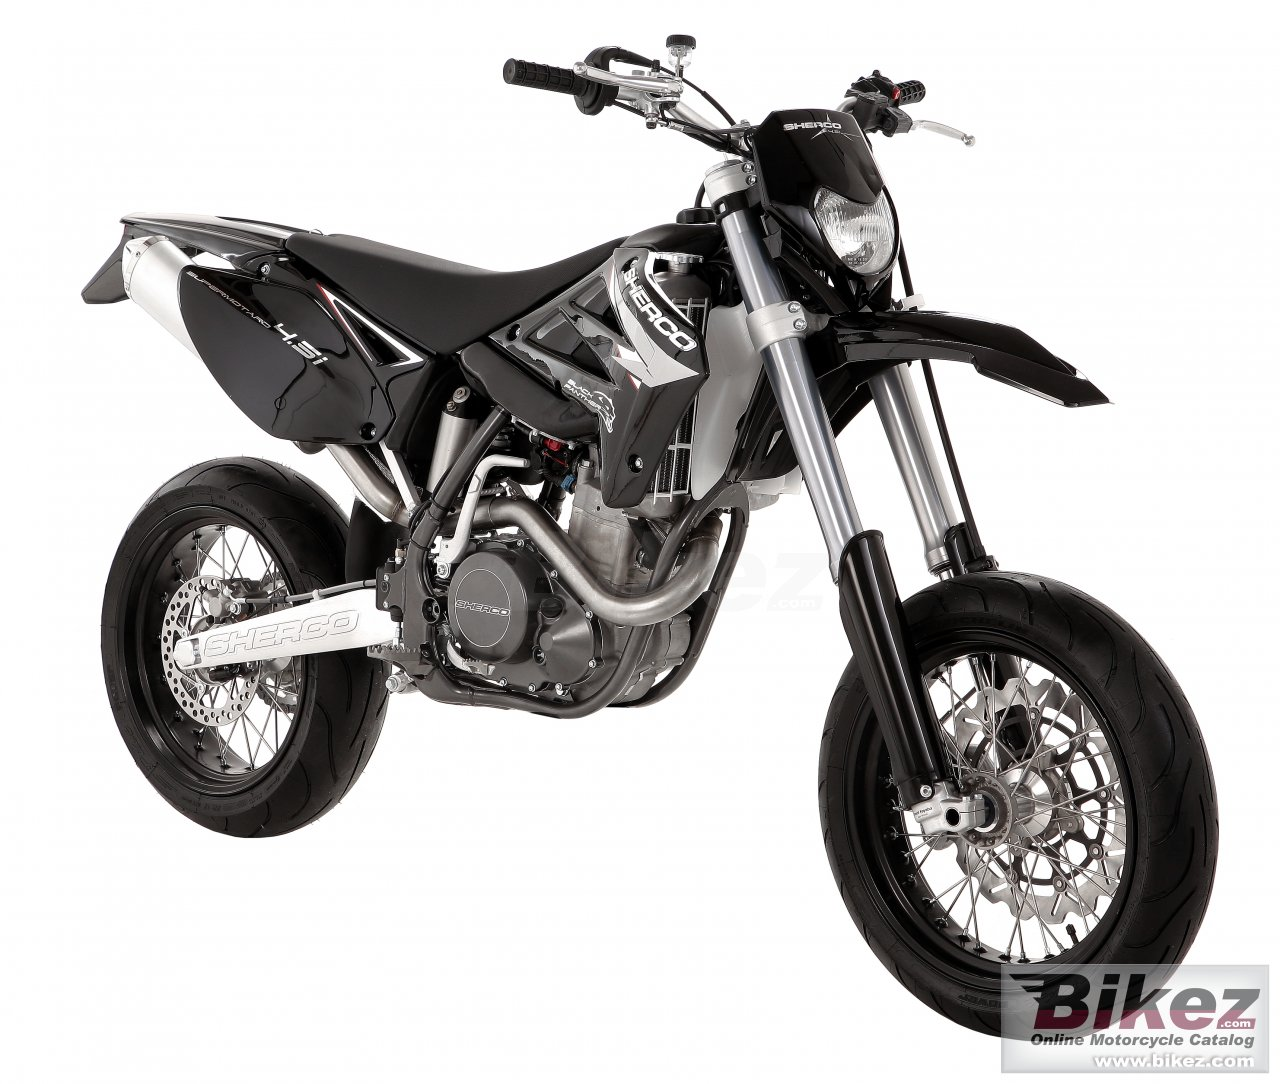 Sherco 4.5i 4t supermotard